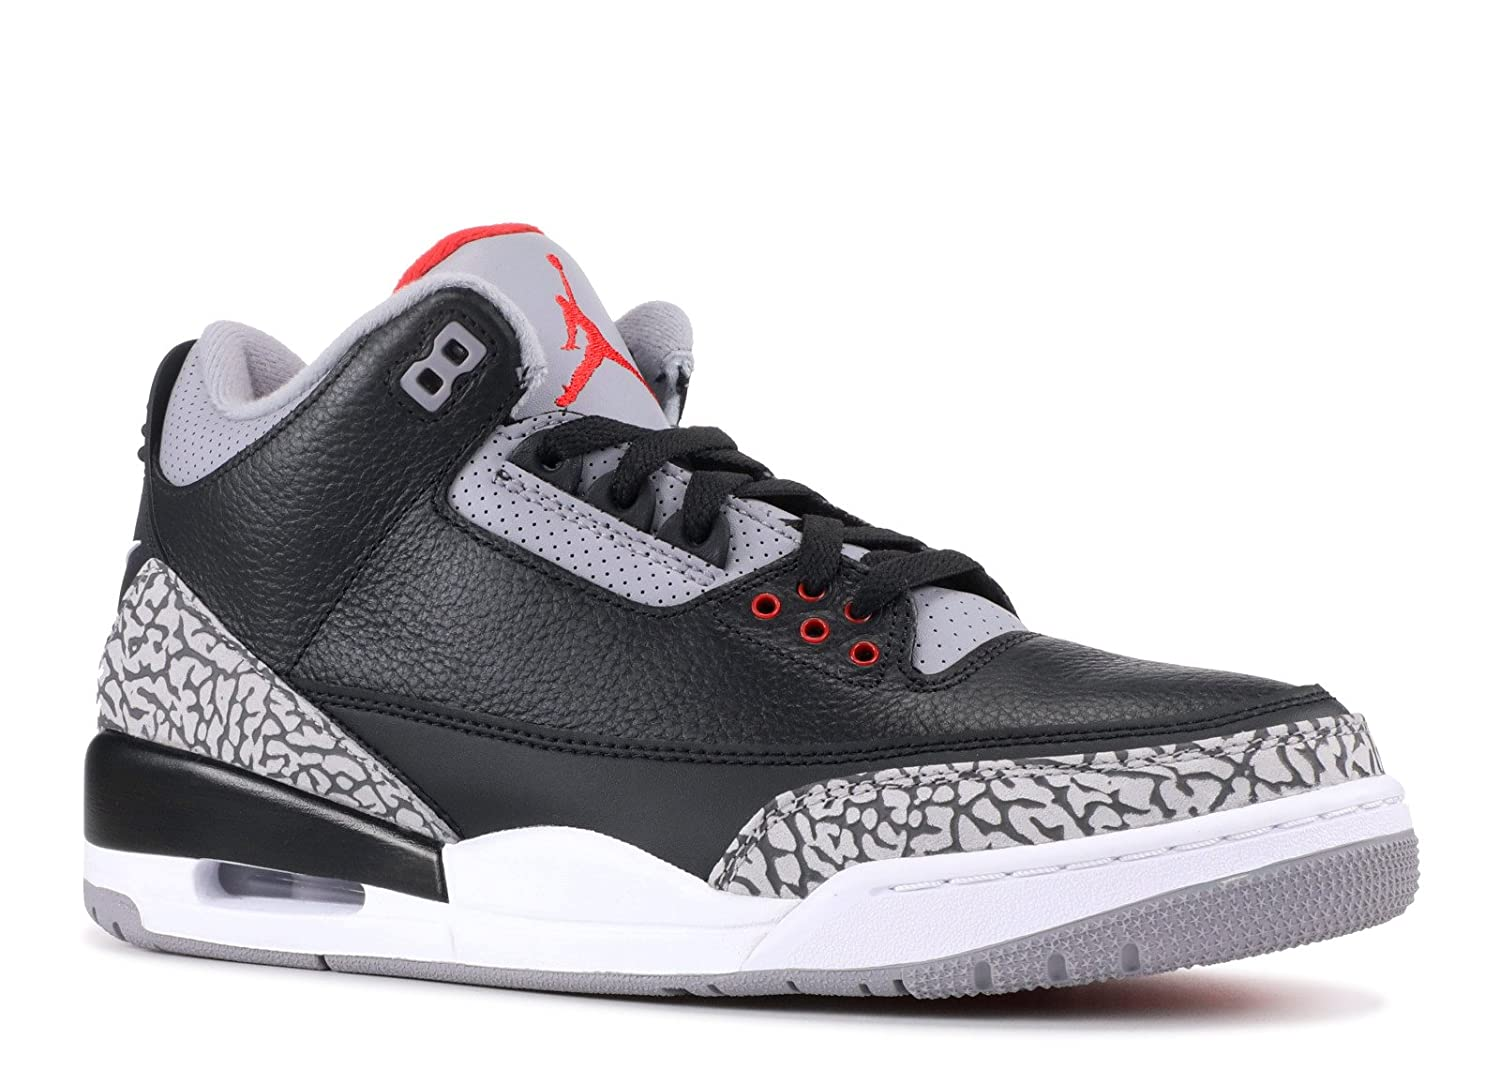 newest ef711 99576 Amazon.com   Nike Mens Air Jordan 3 Retro OG Black Cement Black Cement  Leather Size 15   Basketball